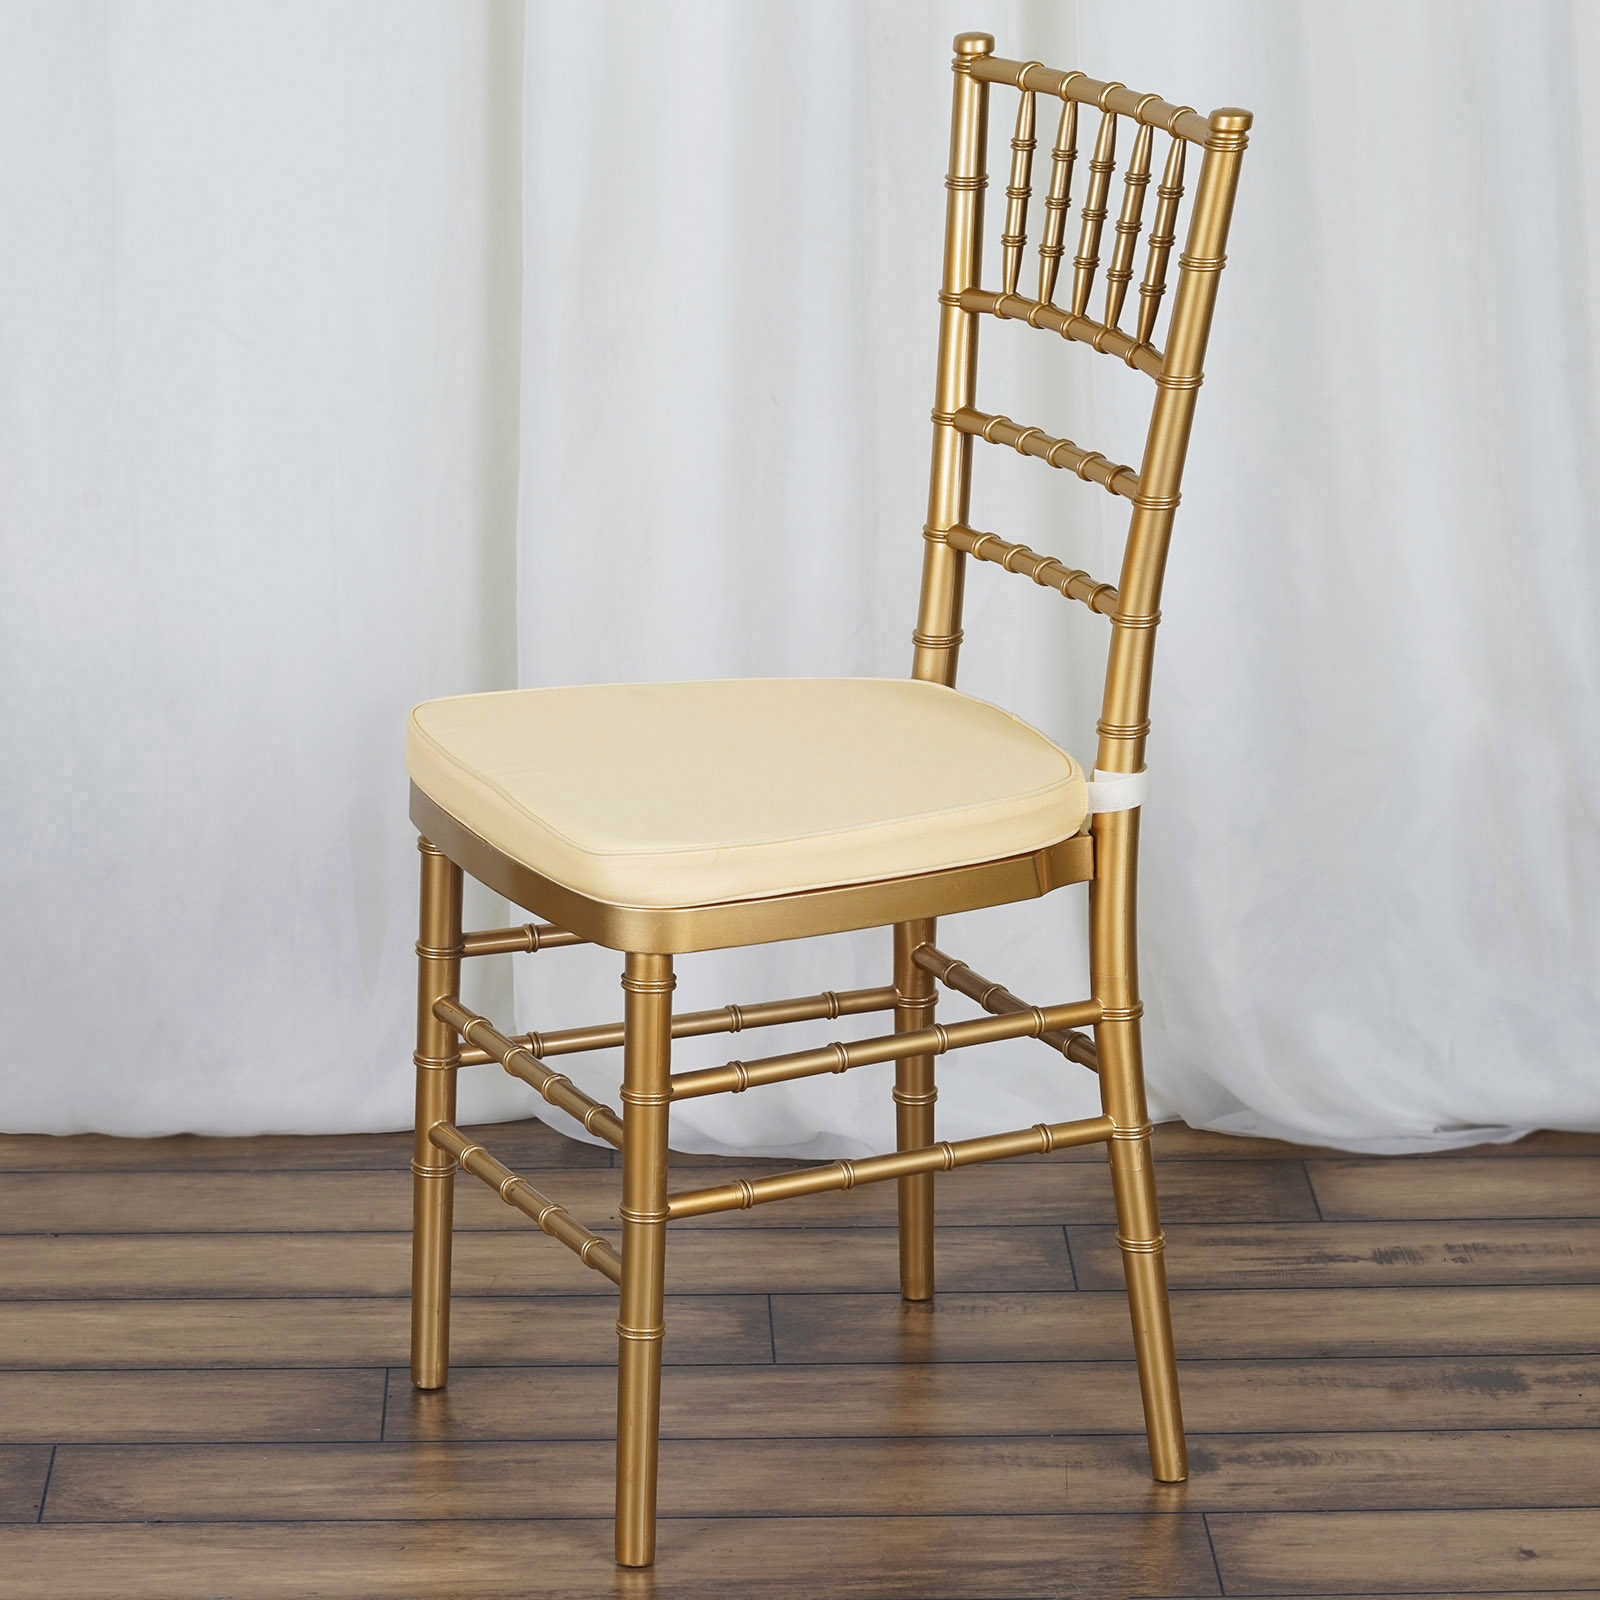 chiavari chairs wedding ceremony industrial metal 10 pcs polyester cushions for chair